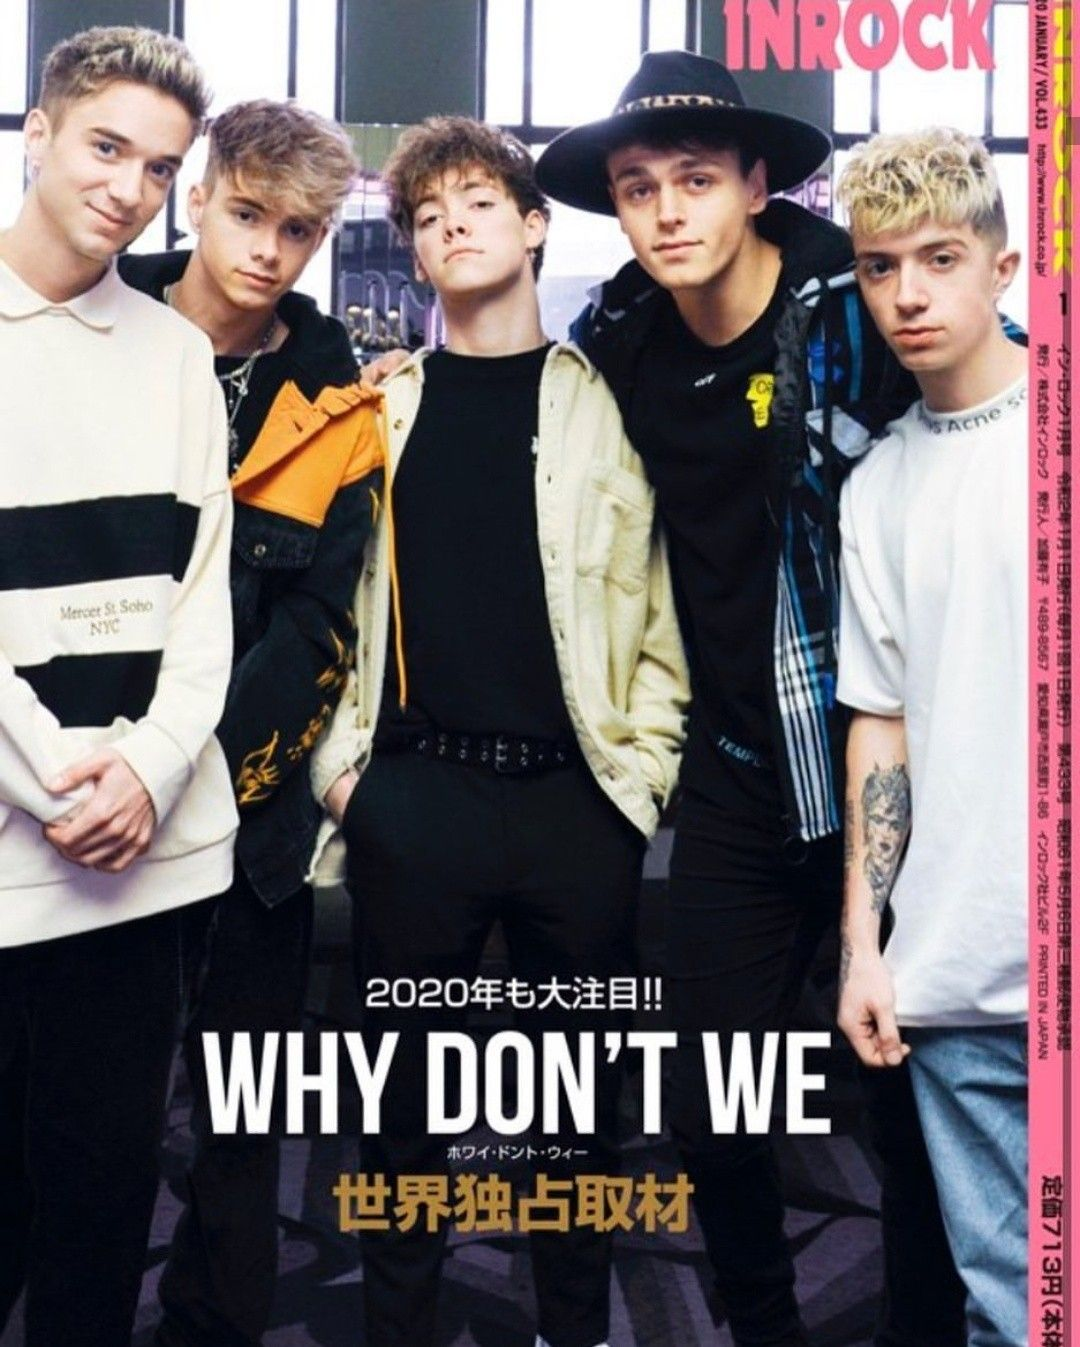 Pin By Xox Caycay Xox On Why Don T We Why Dont We Boys Wdw Why